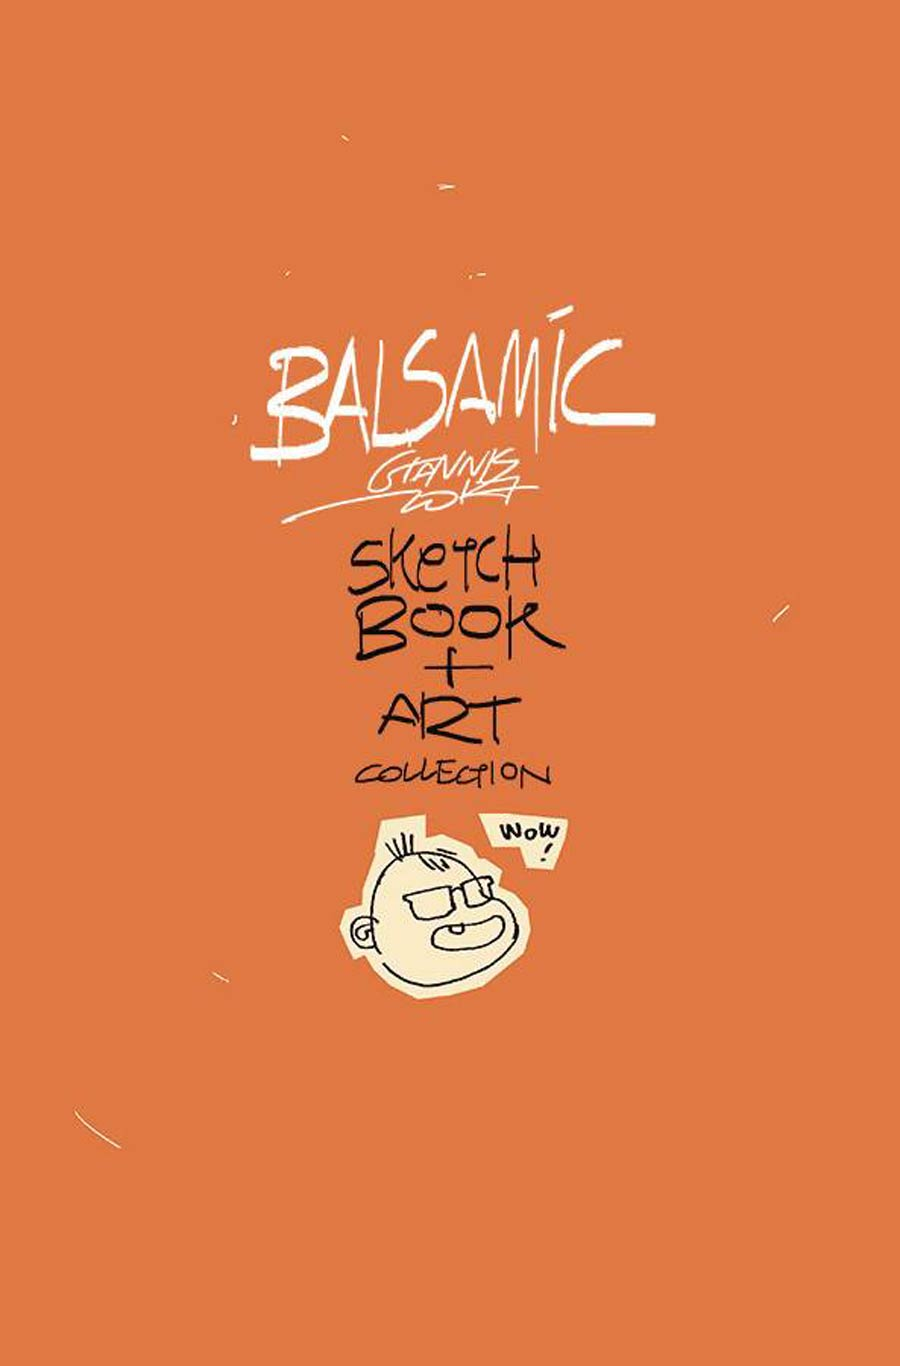 Balsamic A Sketchbook And Art Collection HC